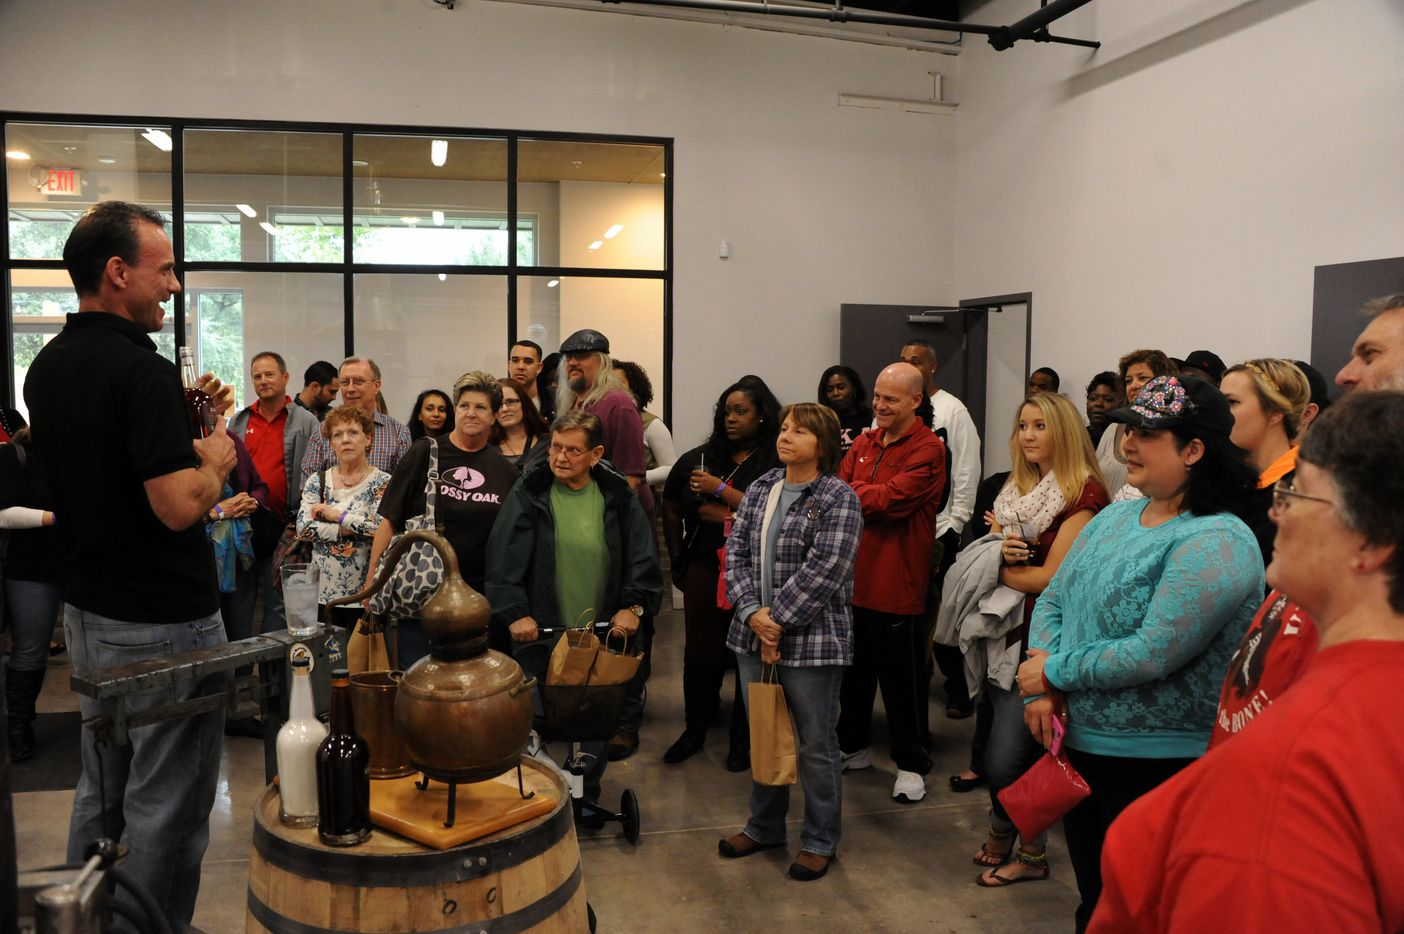 Tour guides welcome guests at Witherspoon Distillery in Lewisville, TX on October 24, 2015.